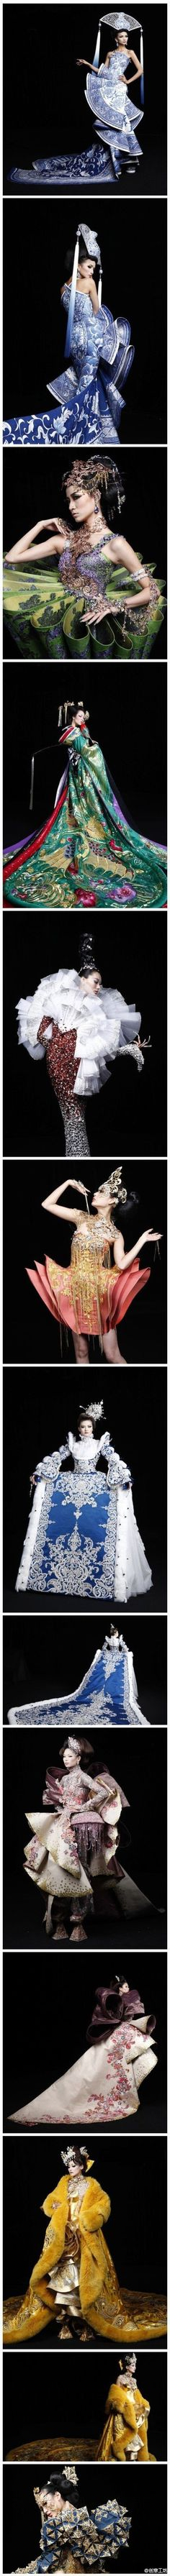 Interesting exquisite work of Guo Pei